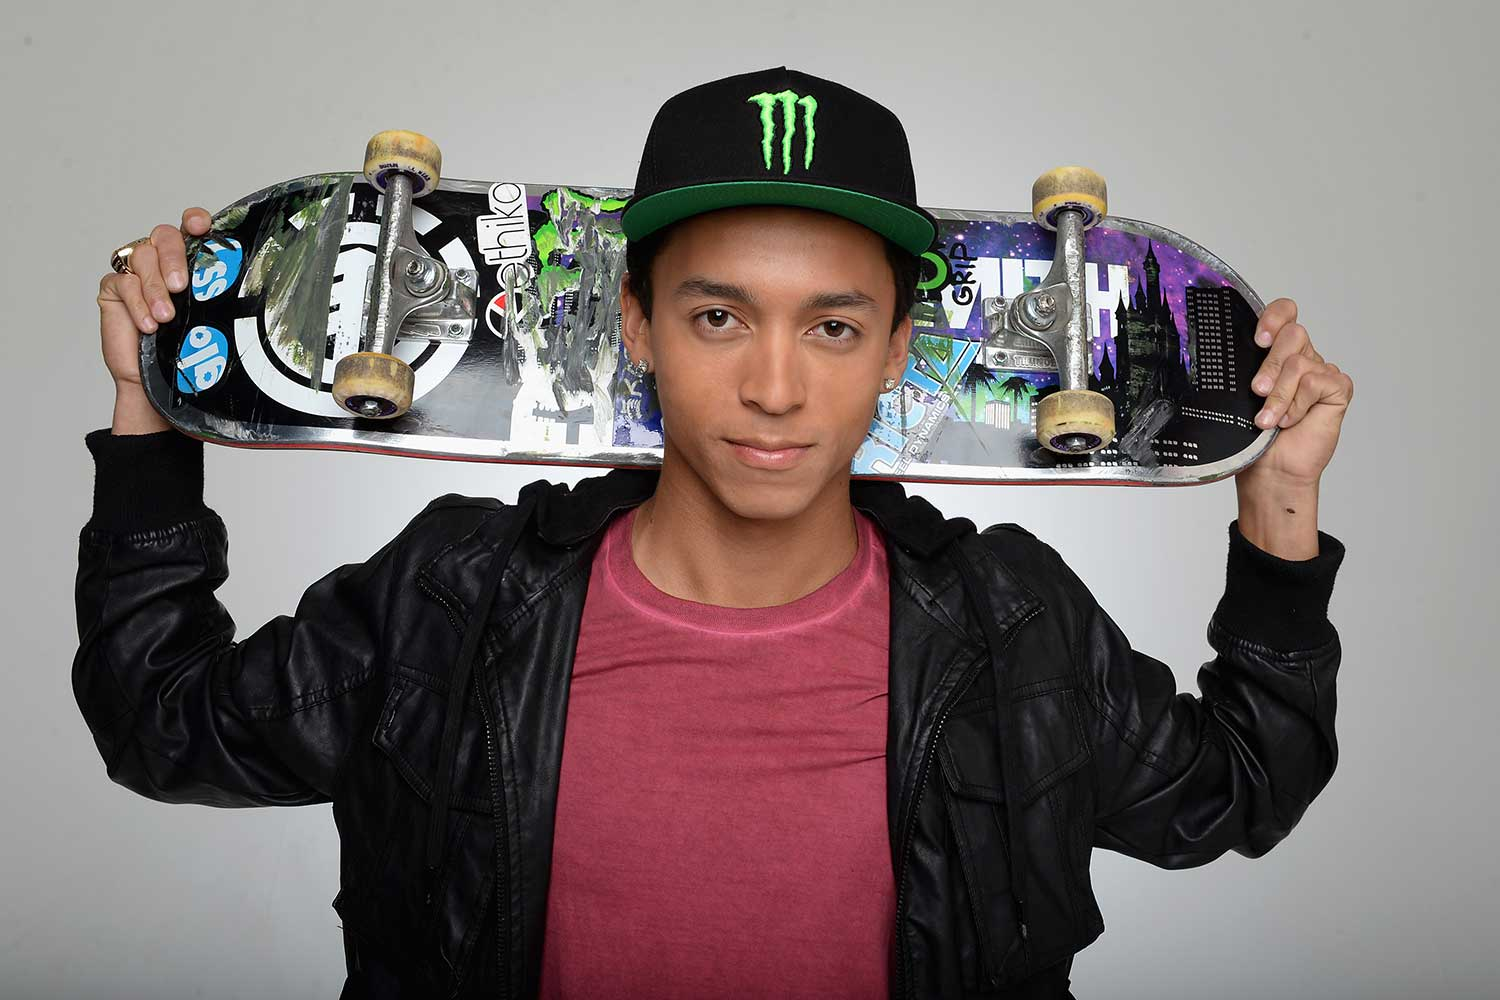 """Professional Skateboarder: Element Skateboards, DC Shoes, Monster Energy, AYC Apparel, Diamond Supply Co. Ricta Wheels, Mob Grip, Stance Socks, Lance Snacks"" Keep up with Nyjah on Instagram @nyjah_huston."